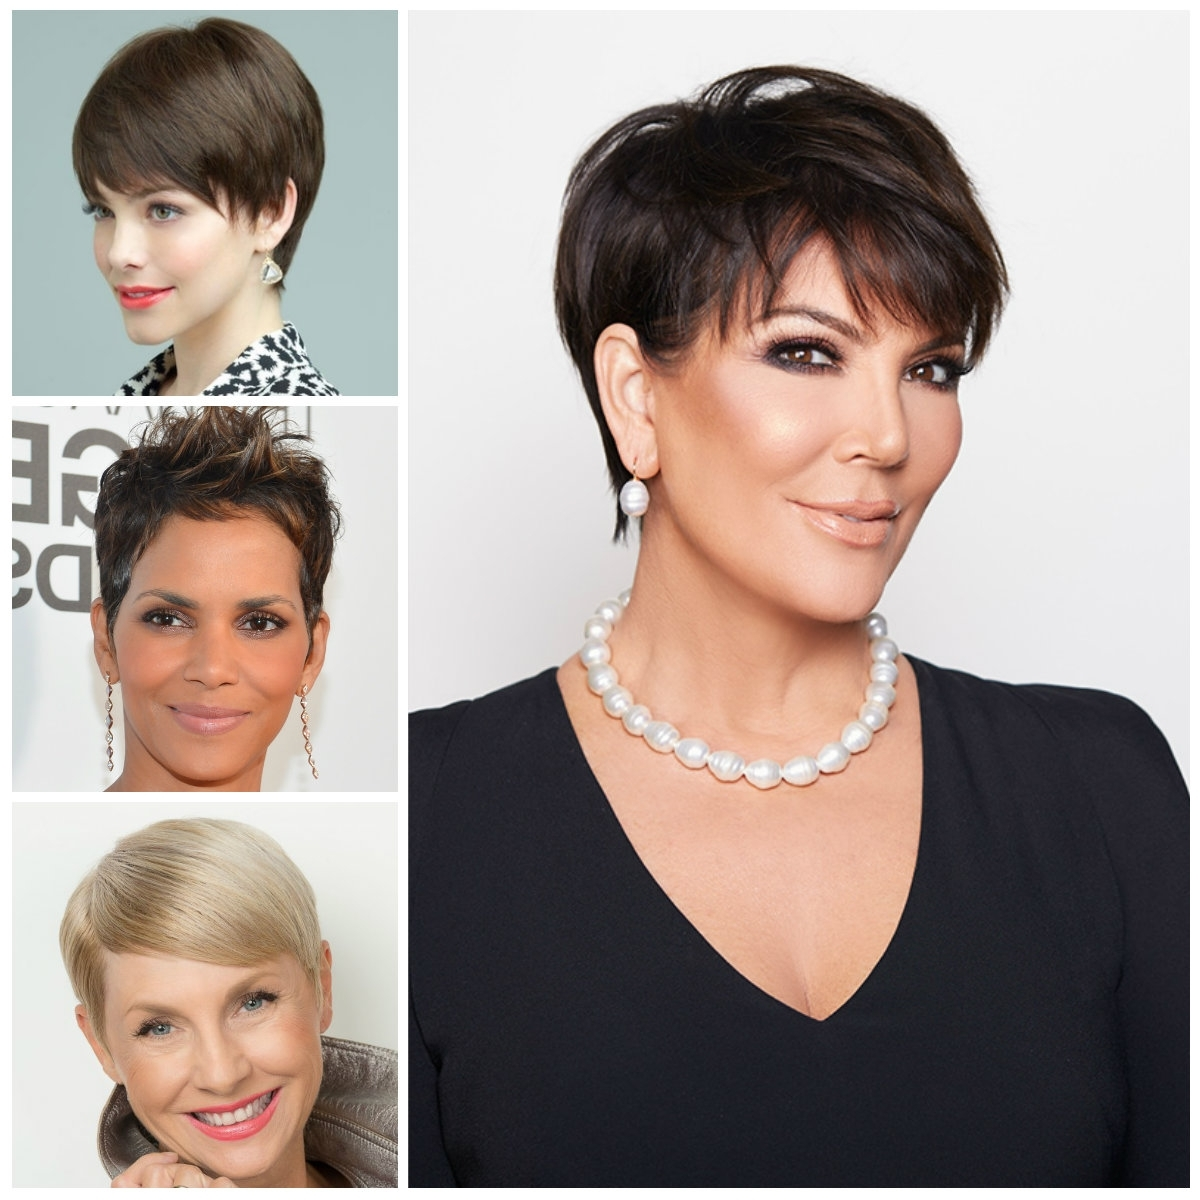 Long Hair Trendy Haircuts | Hairstyle | Pinterest | Trendy Inside Most Up To Date Long To Short Pixie Hairstyles (View 8 of 16)